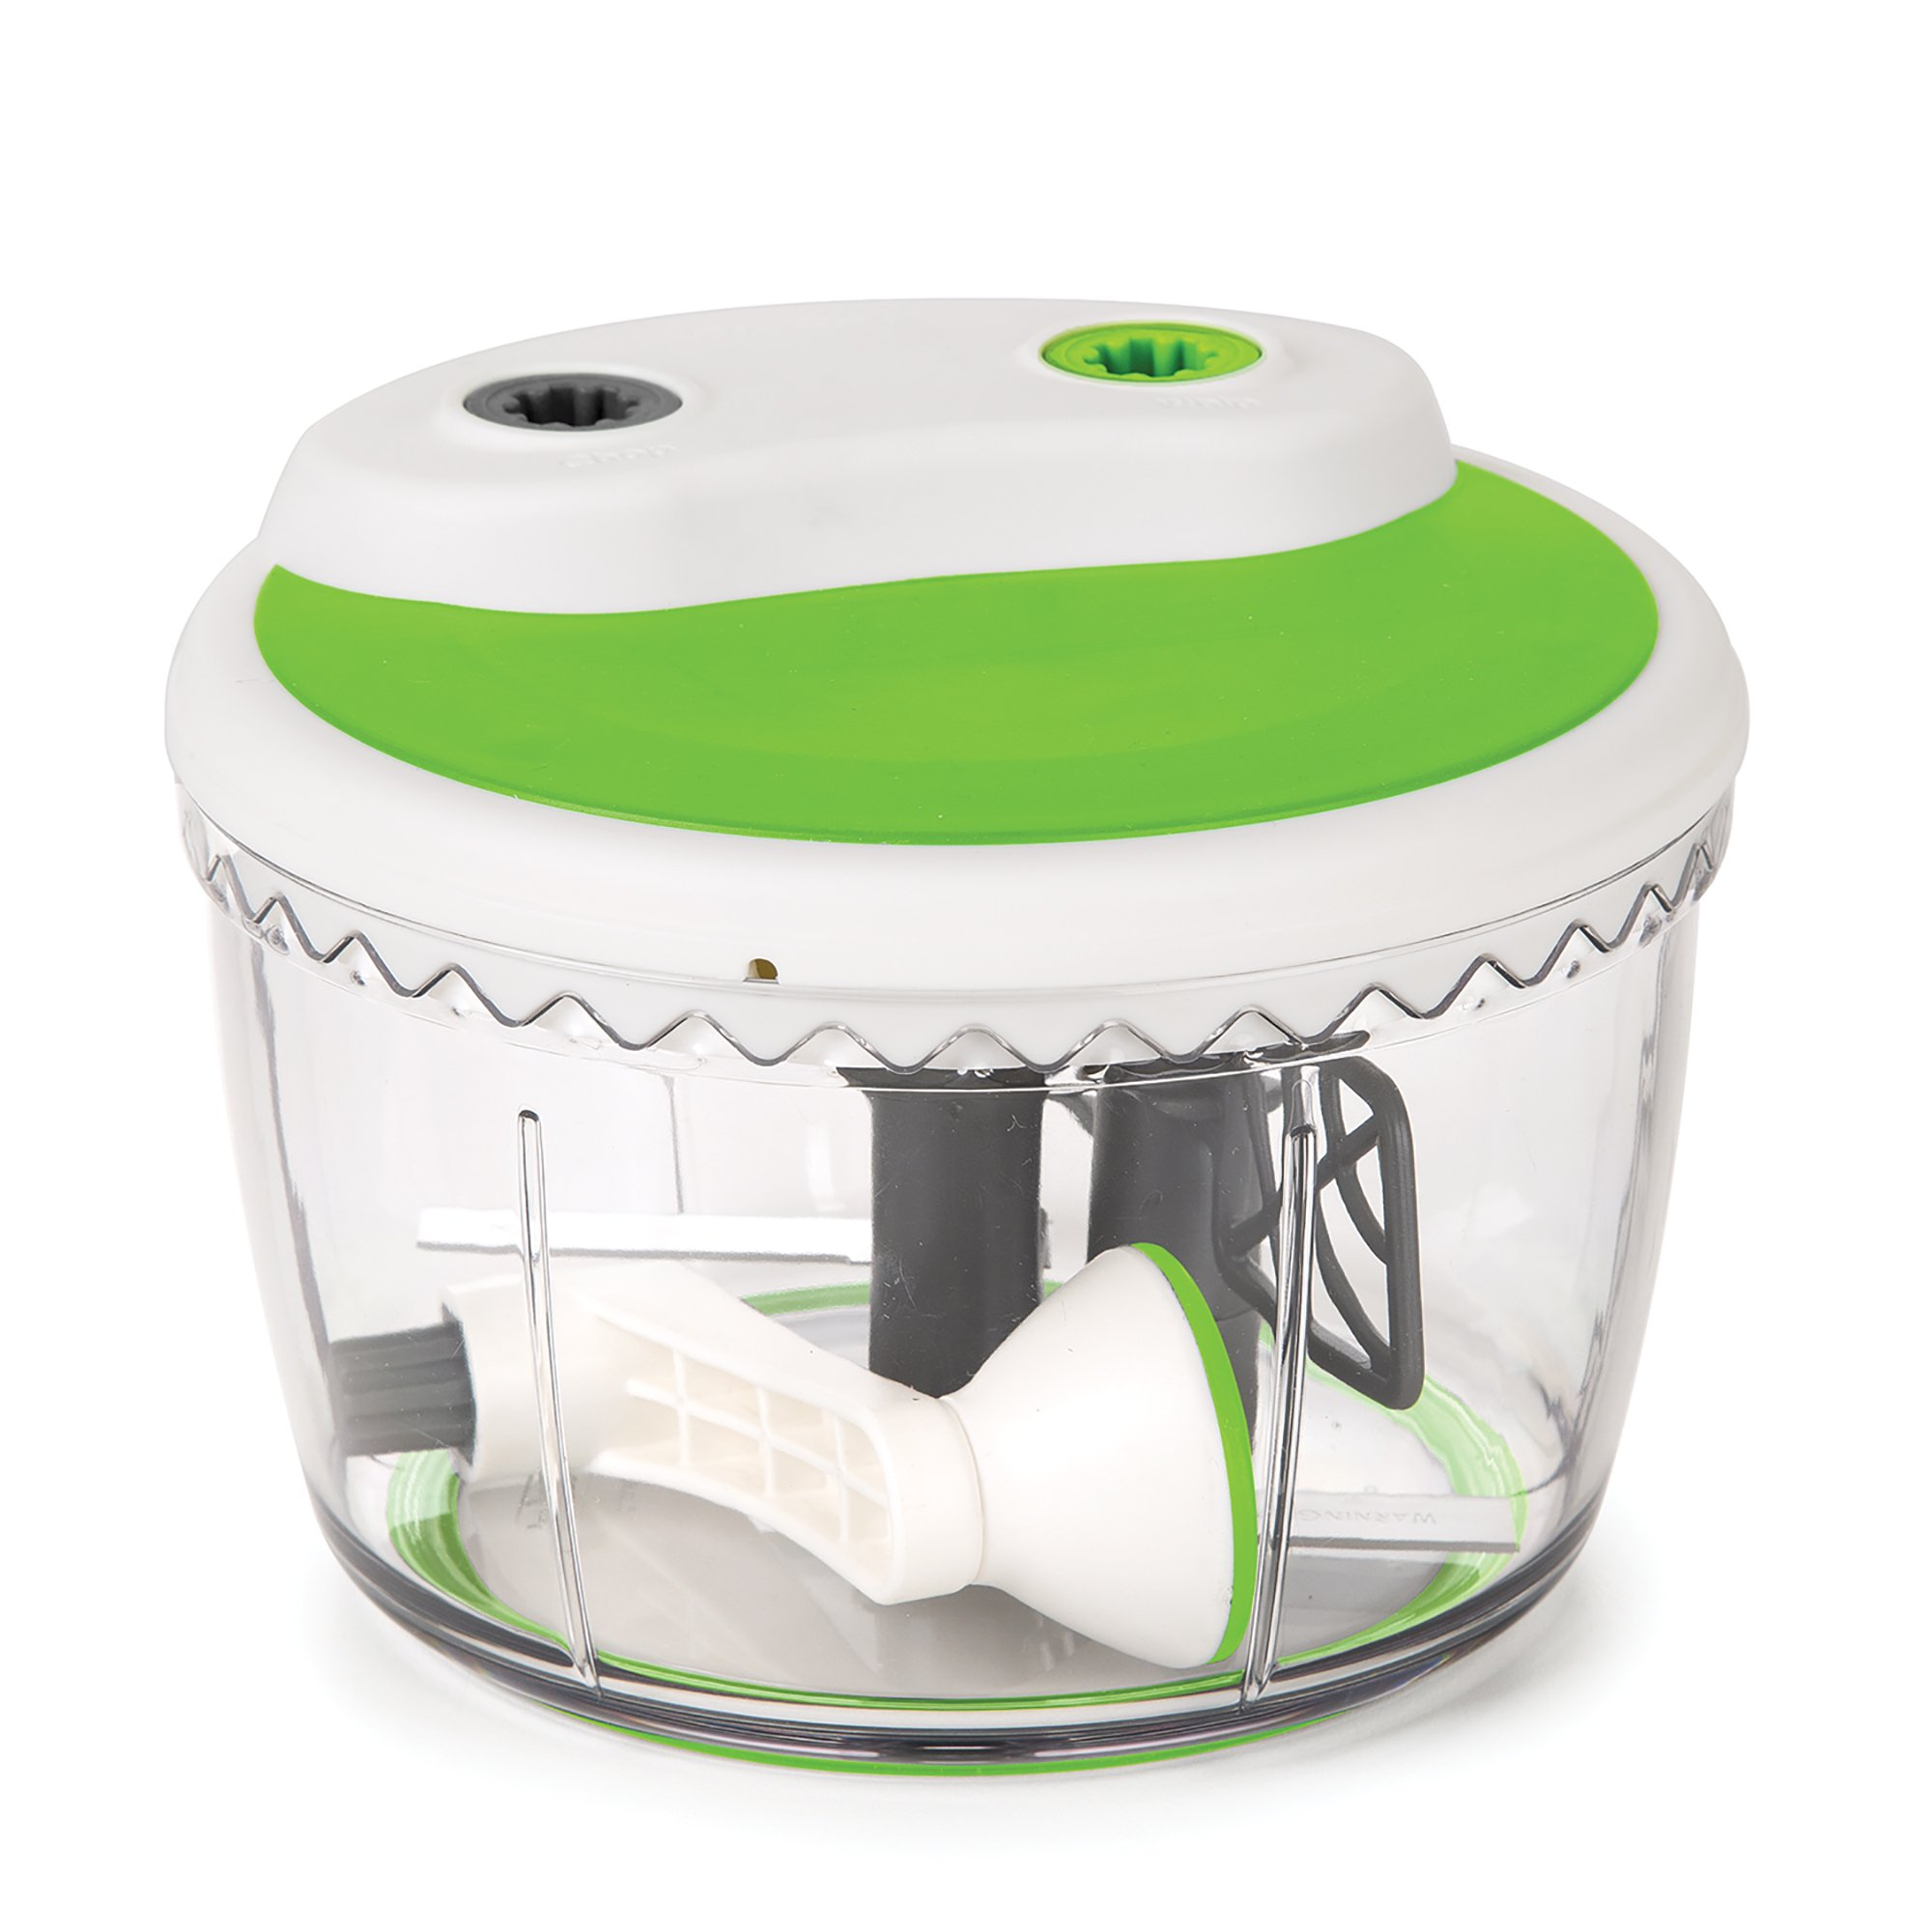 Prepworks by Progressive Dual Speed Chop & Whip, Two Speed Settings, Non-Skid Base, Whip Cream, Dressings, Mincing Onions, Salsa, Mixer, Vegetables, Coleslaw by Progressive International (Image #3)